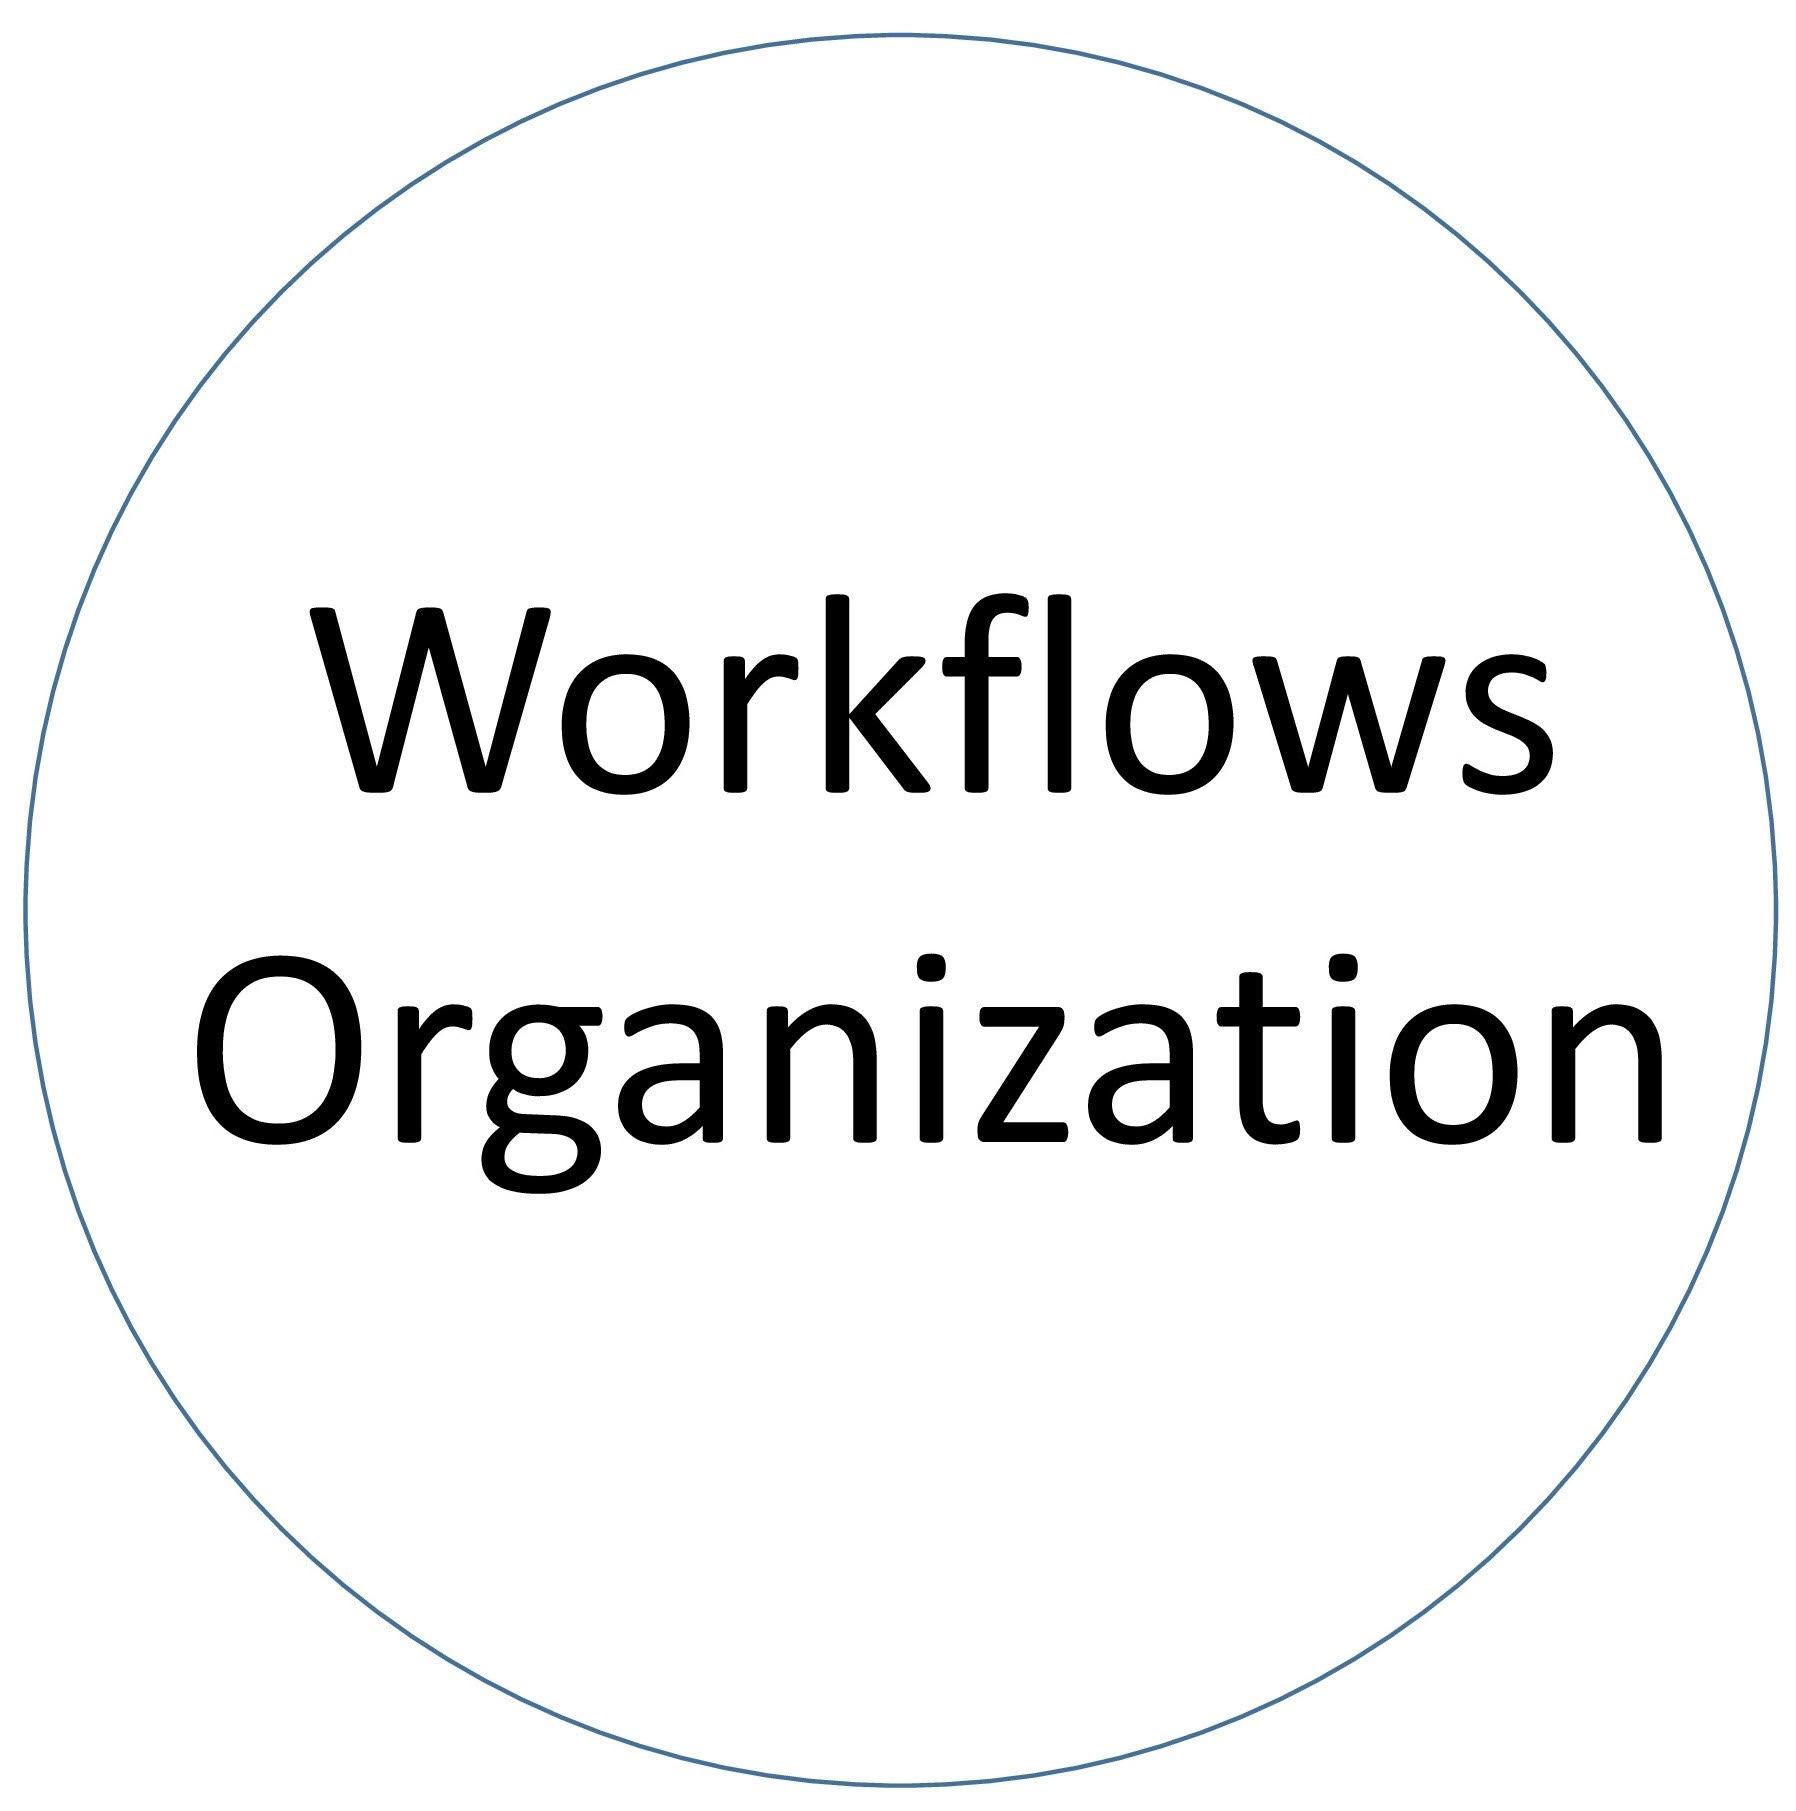 Workflows.org